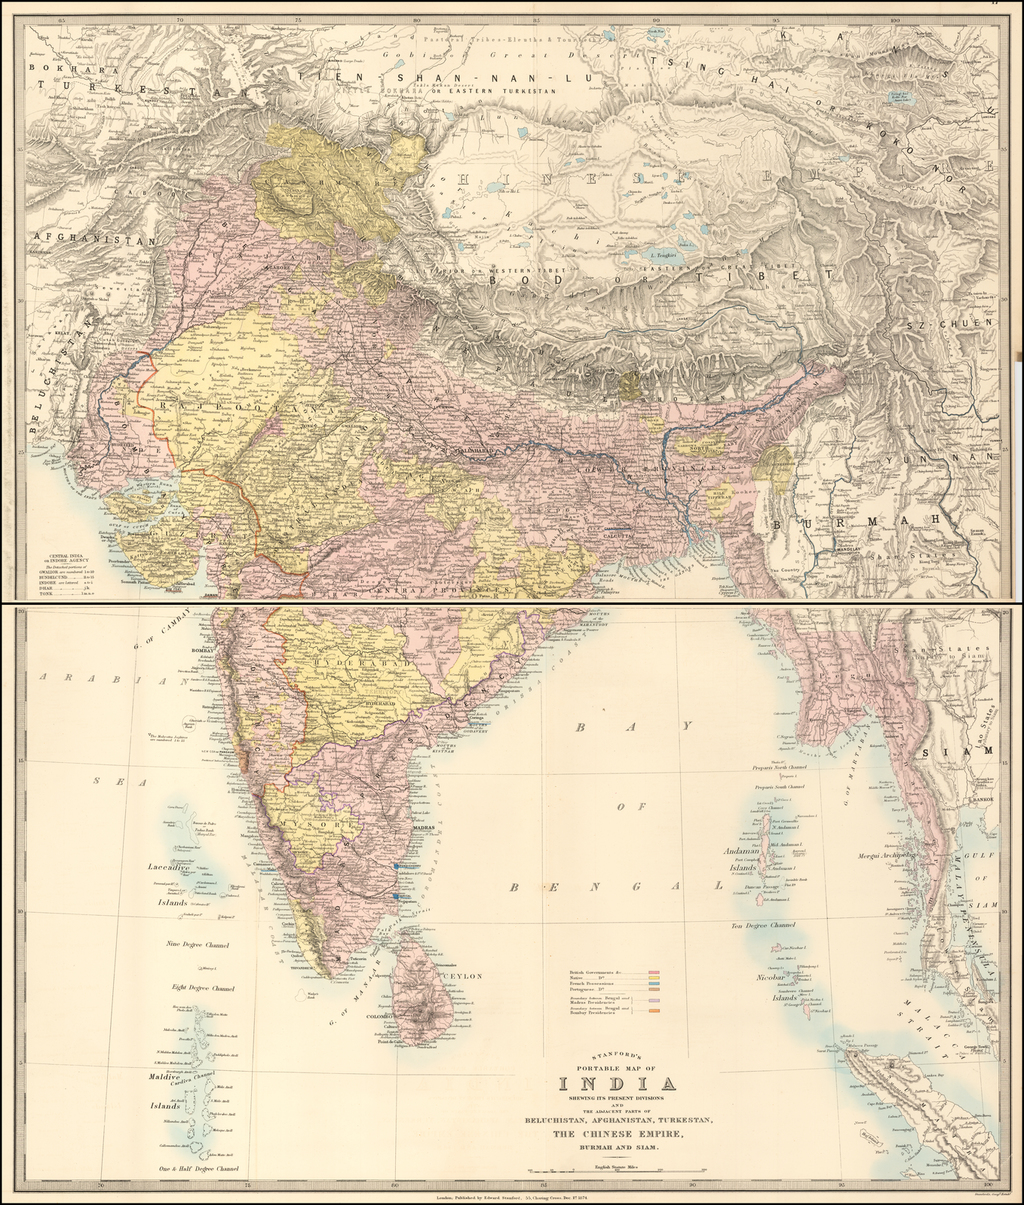 Stanford's Portable Map of India Shewing its Present Divisions and The Adjacent Parts of Beluchistan, Afghanistan, Turkestan, The Chinese Empire, Burmah and Siam. By Edward Stanford